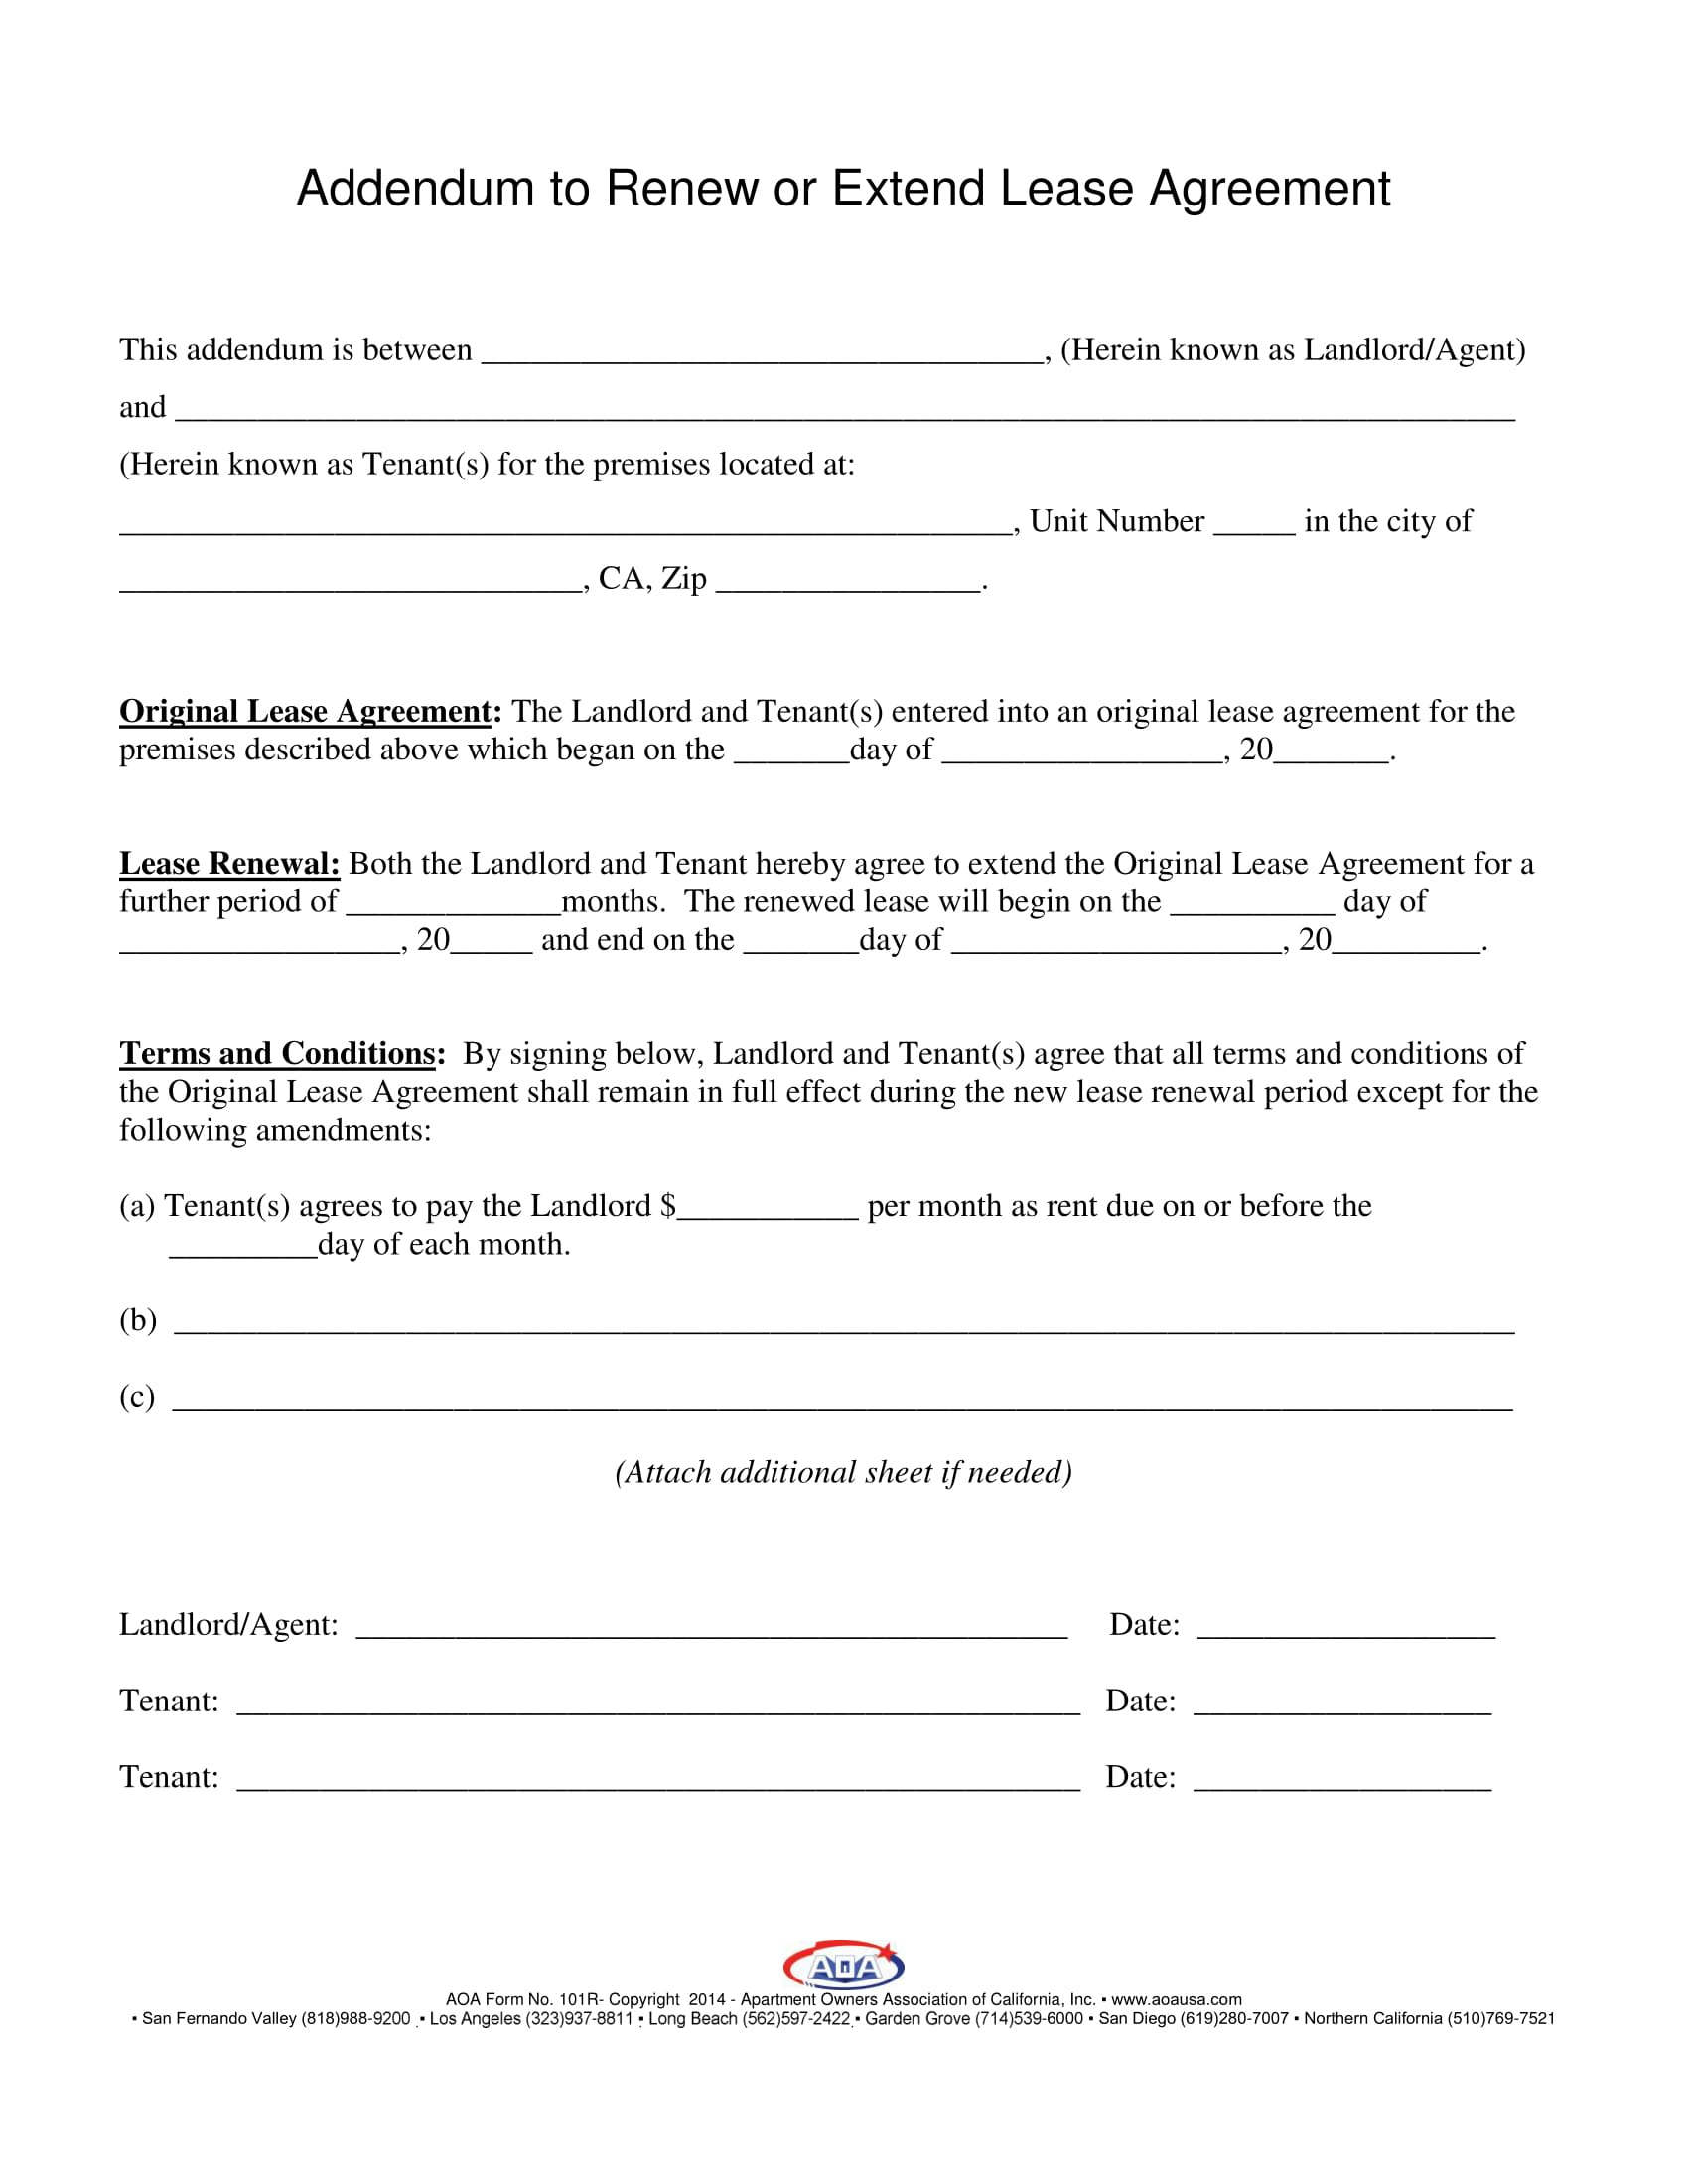 addendum to renew extend lease agreement form 1